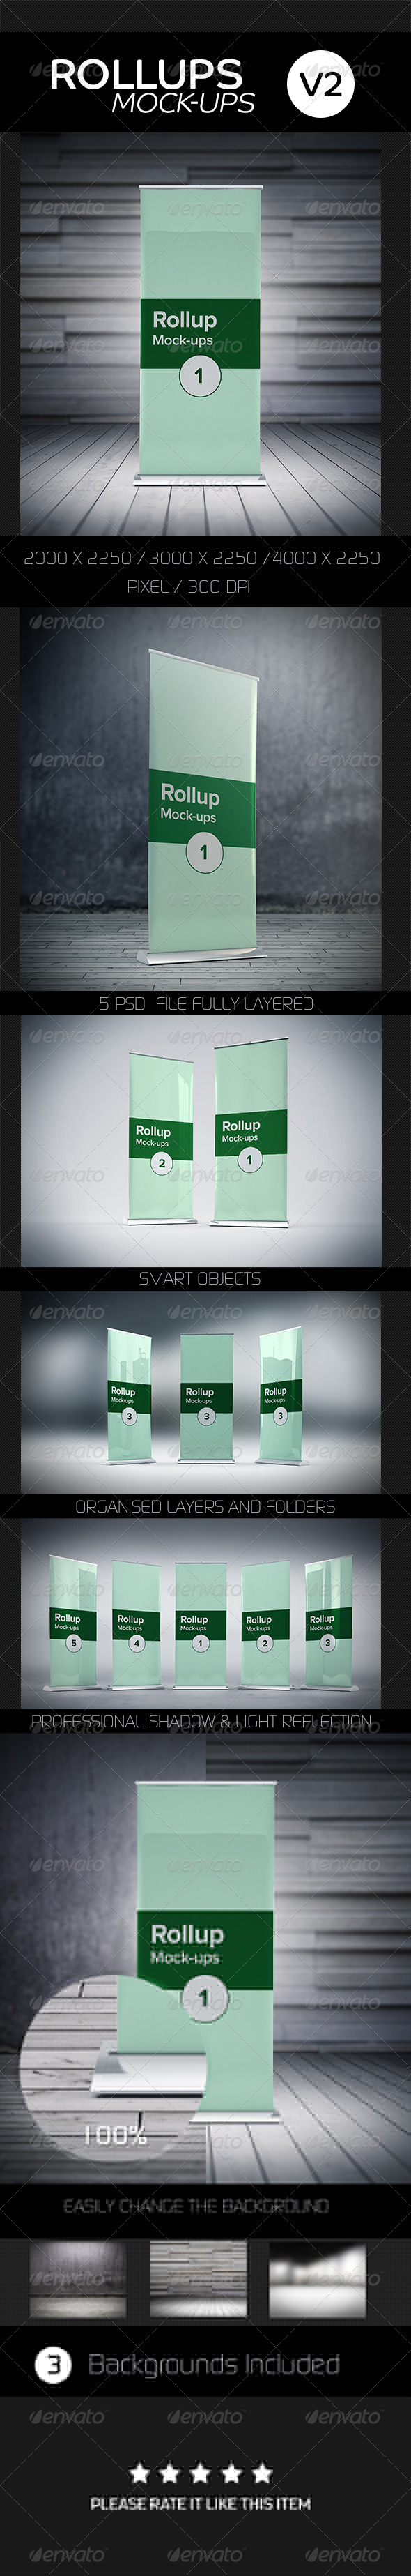 GraphicRiver Roll ups Mock-ups V2 8201784